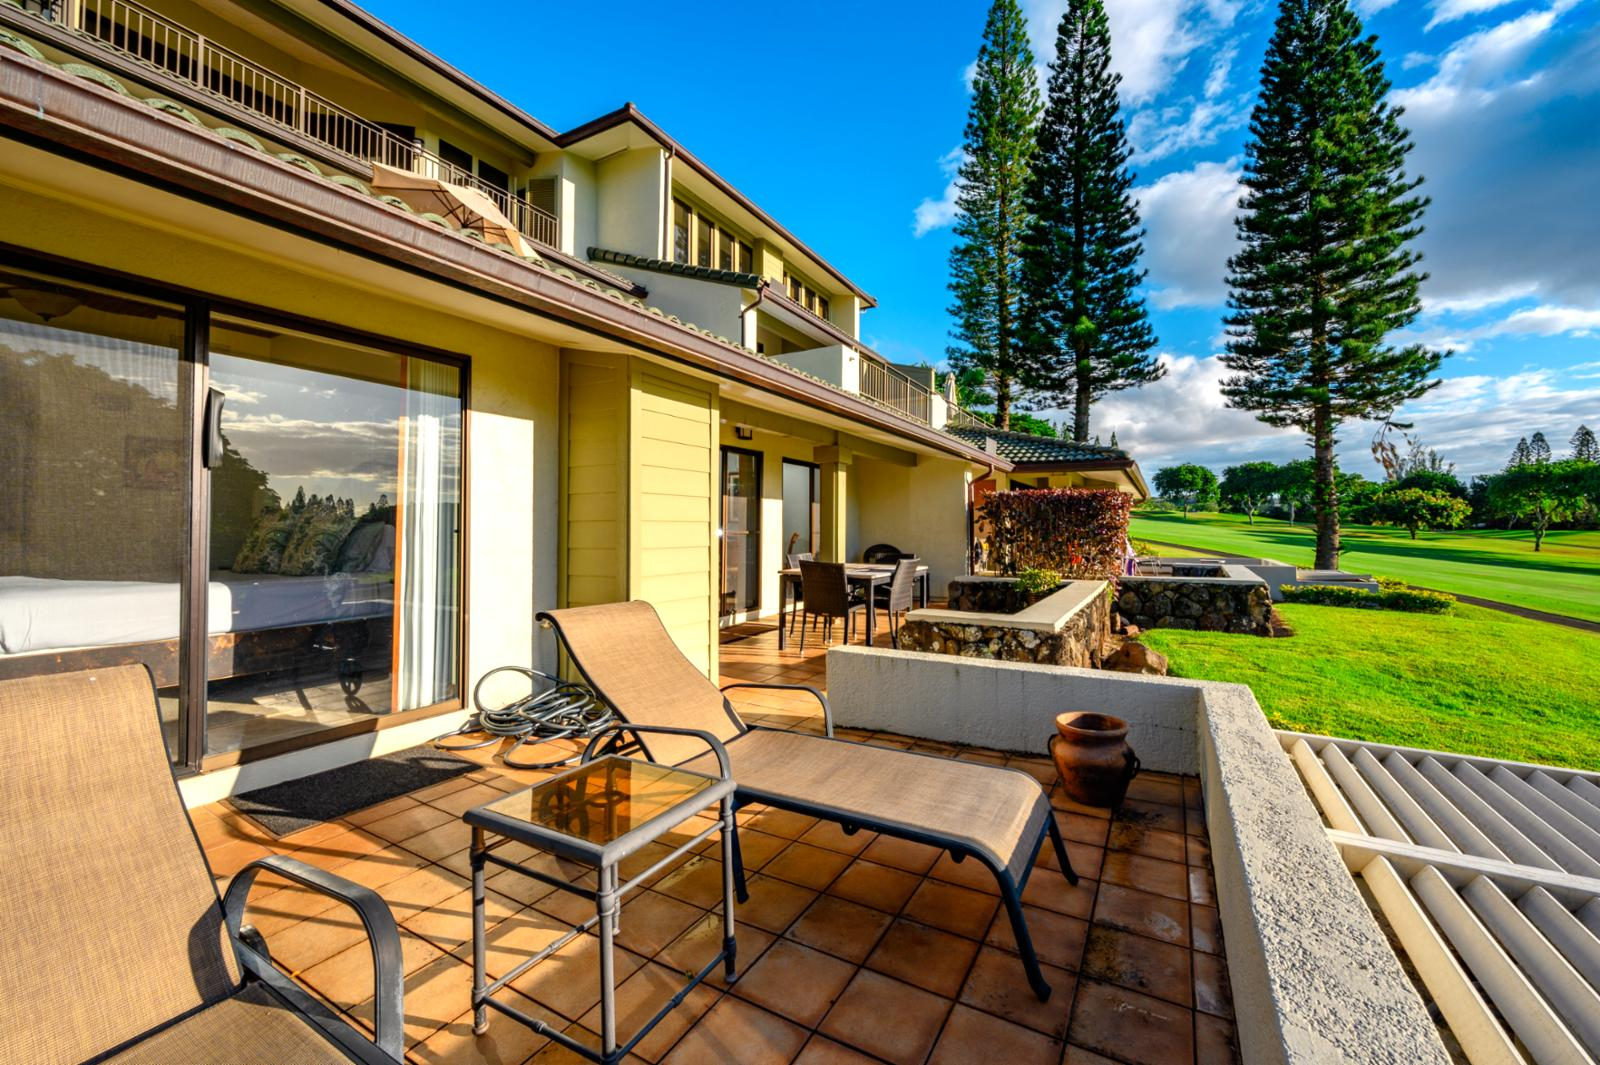 Outstanding Views from Lanai